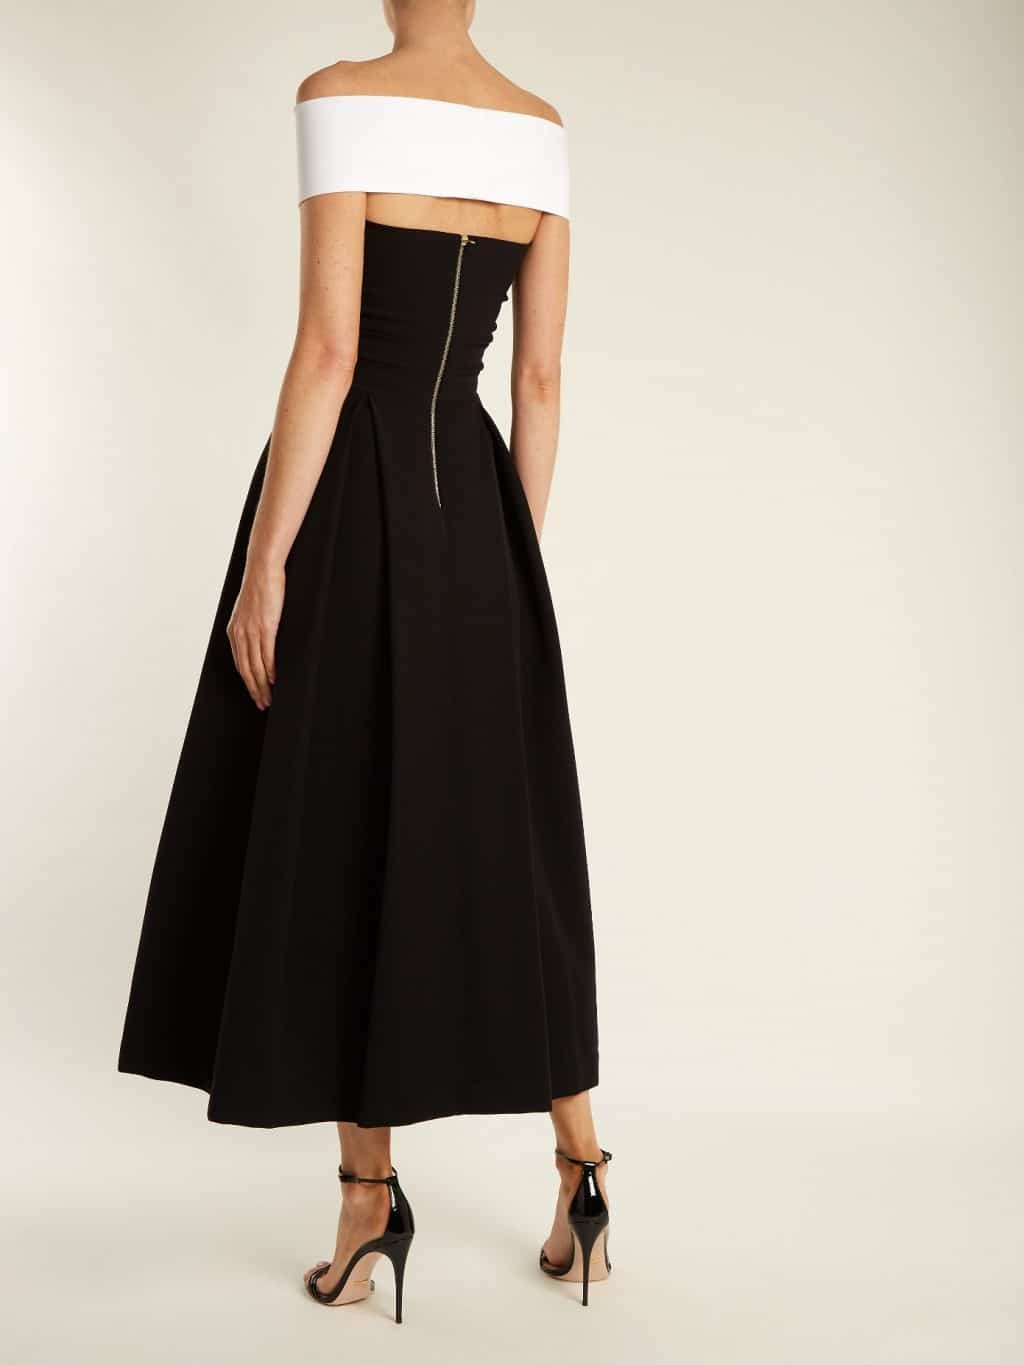 PREEN BY THORNTON BREGAZZI Virginia Off The Shoulder Cady Black Dress